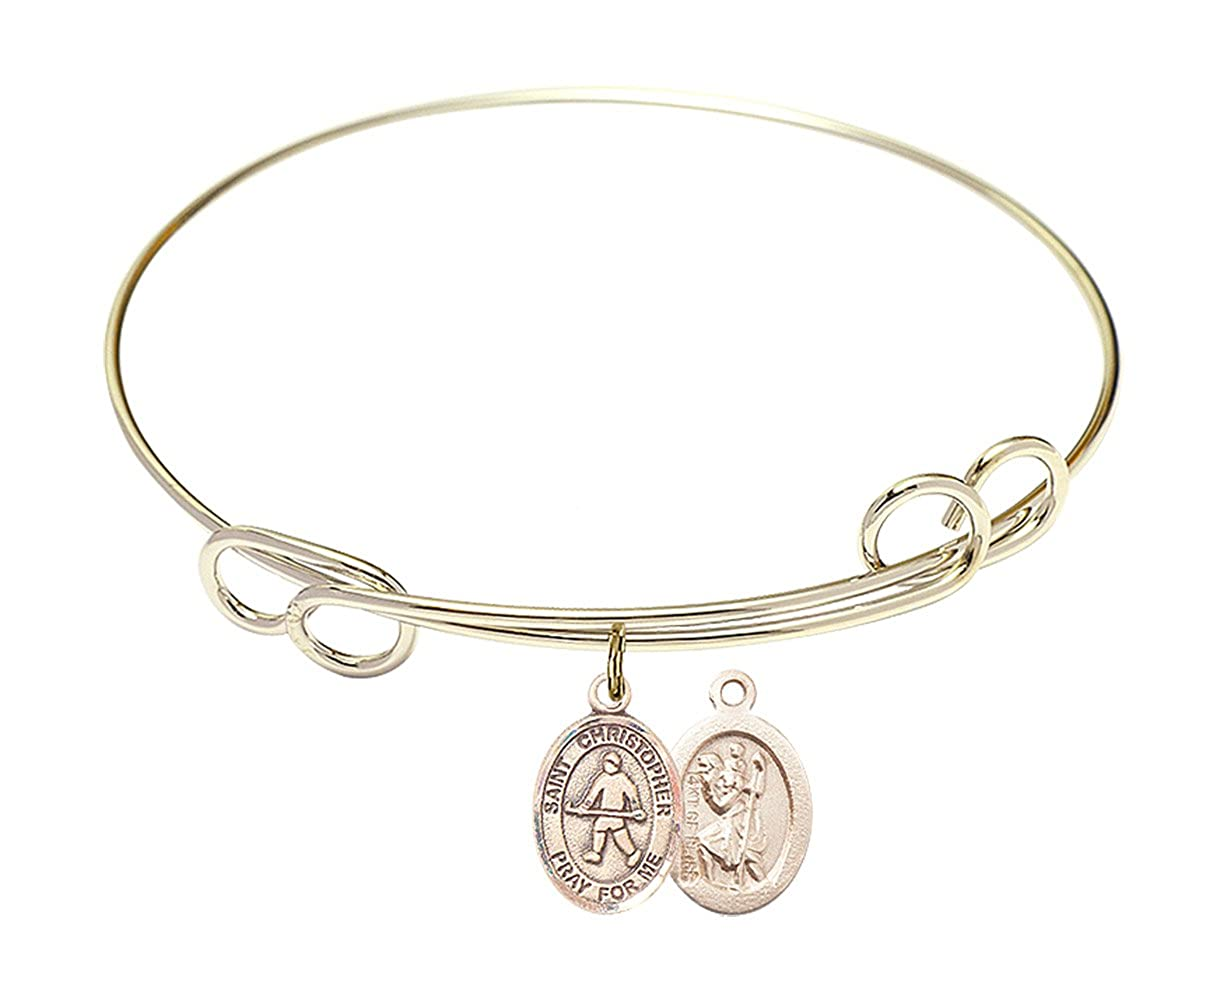 Christopher//Field Hockey Charm. DiamondJewelryNY Double Loop Bangle Bracelet with a St